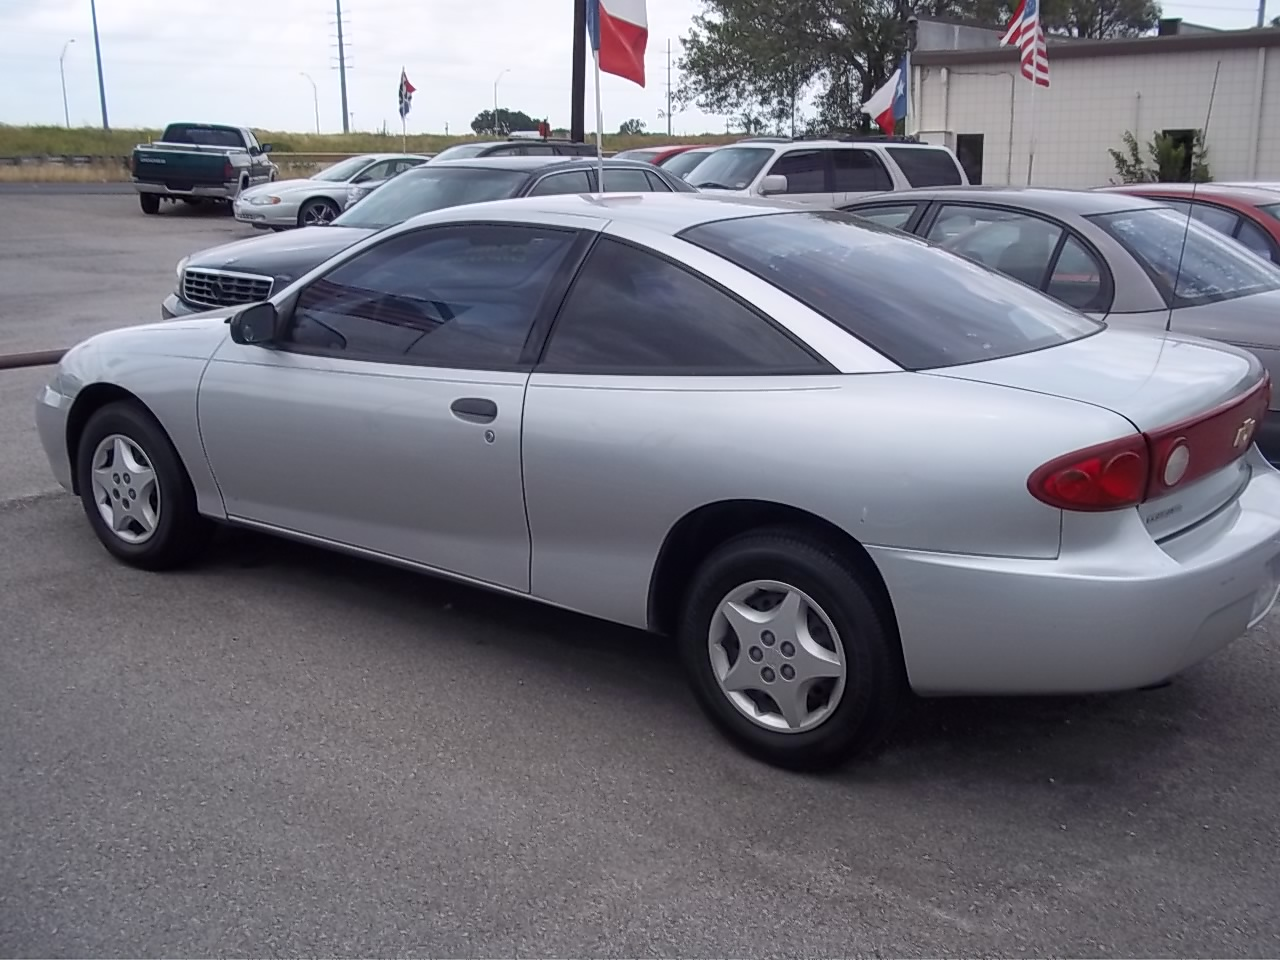 2004 Chevrolet Cavalier - Information and photos - ZombieDrive